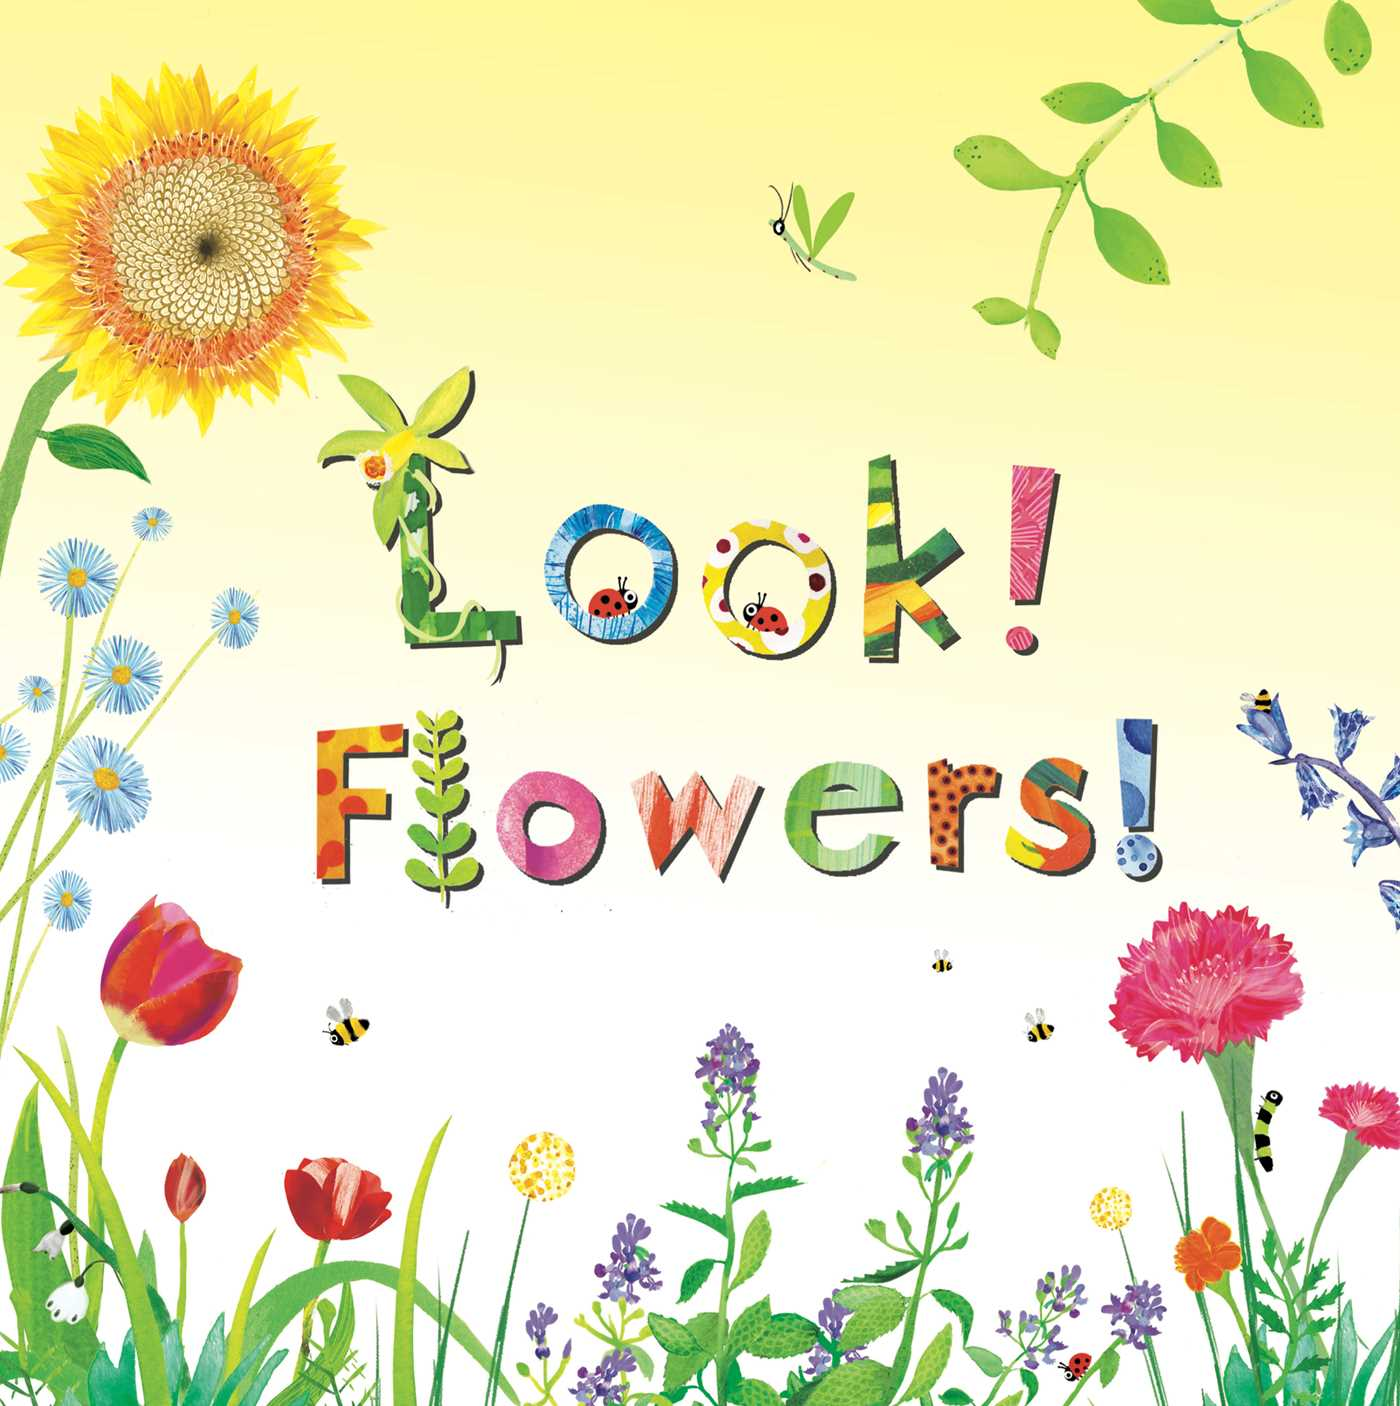 Book Cover Flower : Look flowers book by stephanie calmenson puy pinillos